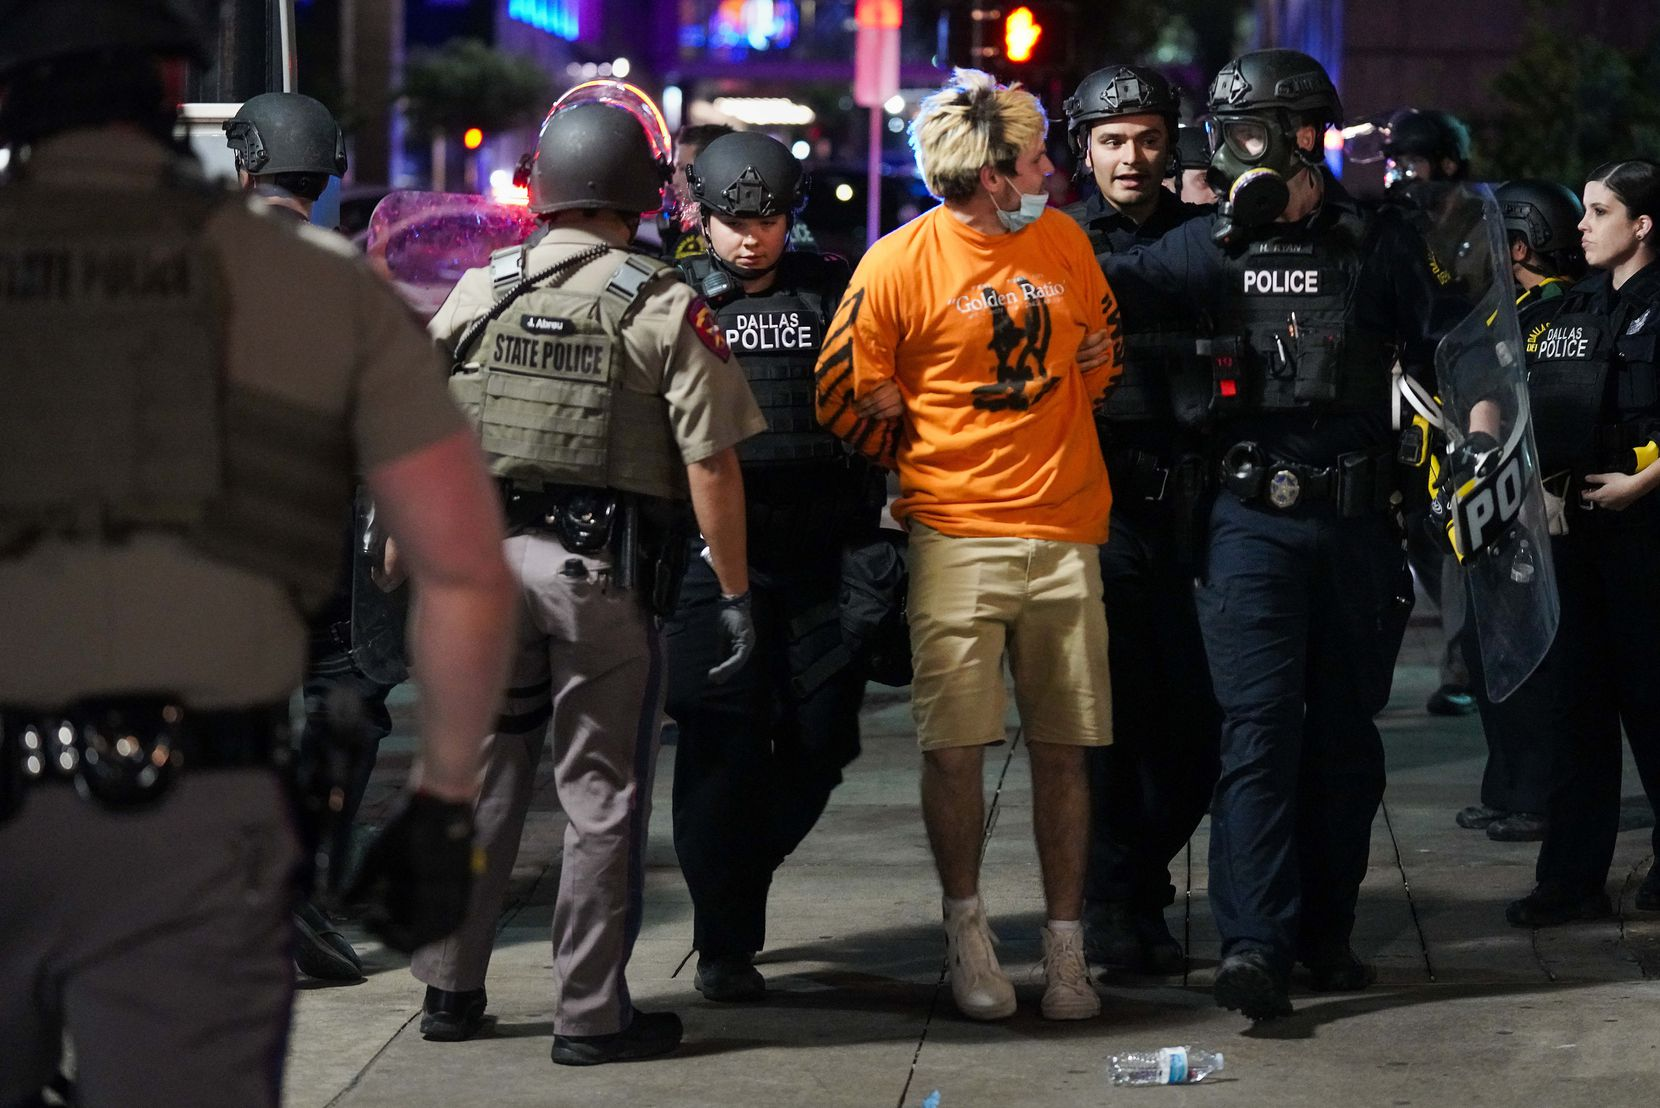 Dallas police arrest a man on Elm Street while working to clear groups of people from downtown streets following a protest against police brutality in the early morning hours of Saturday, May 30, 2020, in Dallas.